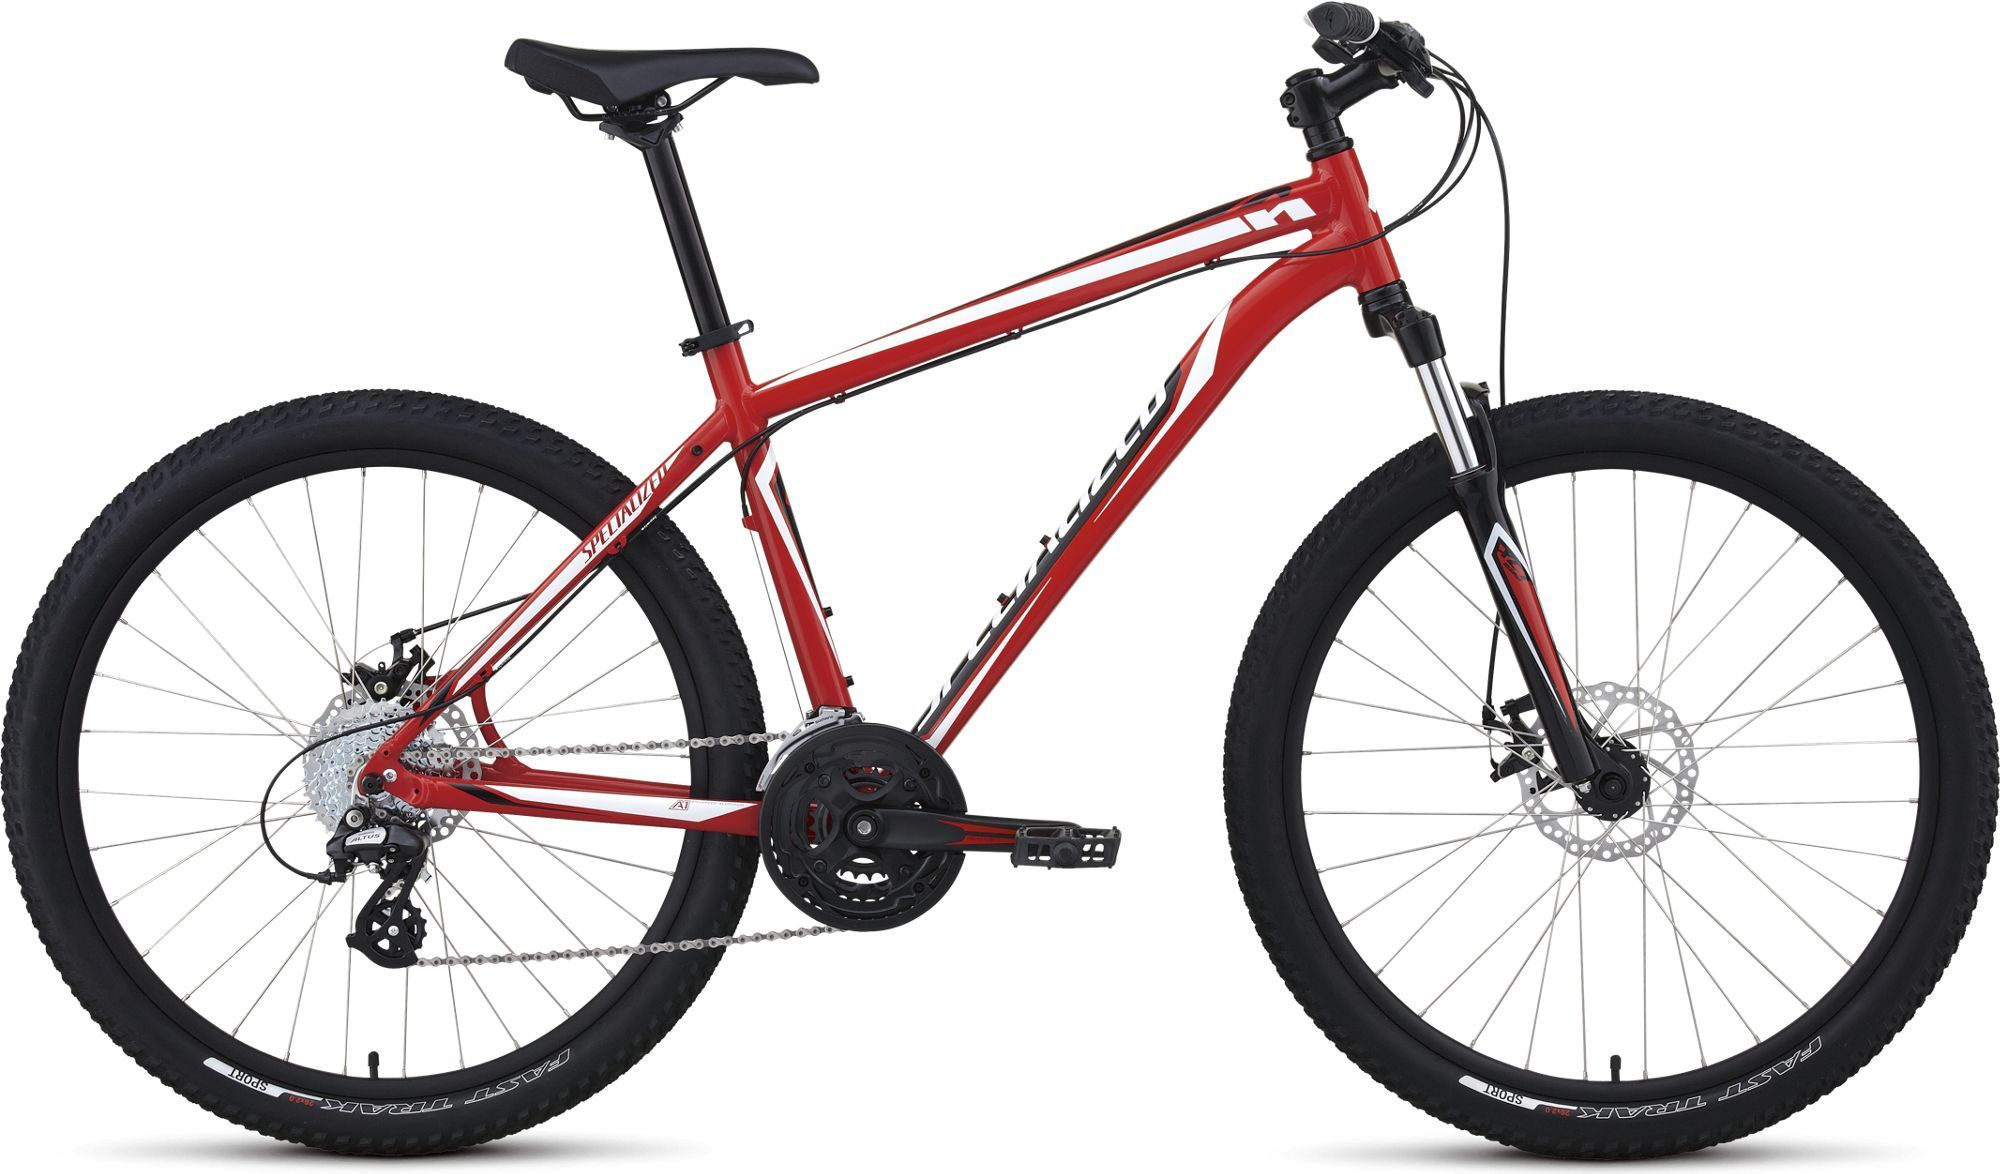 2013 Specialized Bikes submited images.